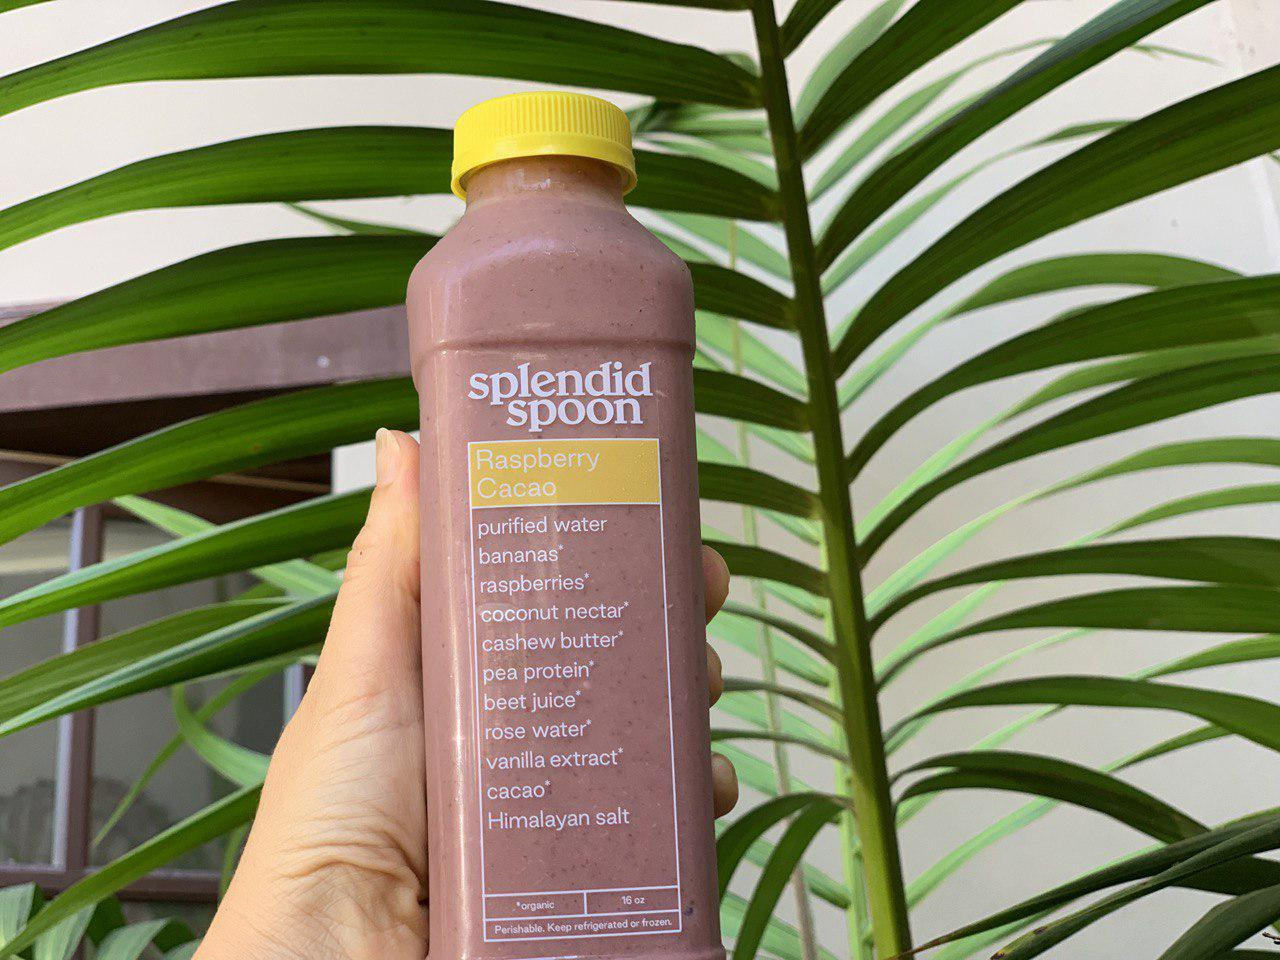 Raspberry Cacao Splendid Spoon Smoothie